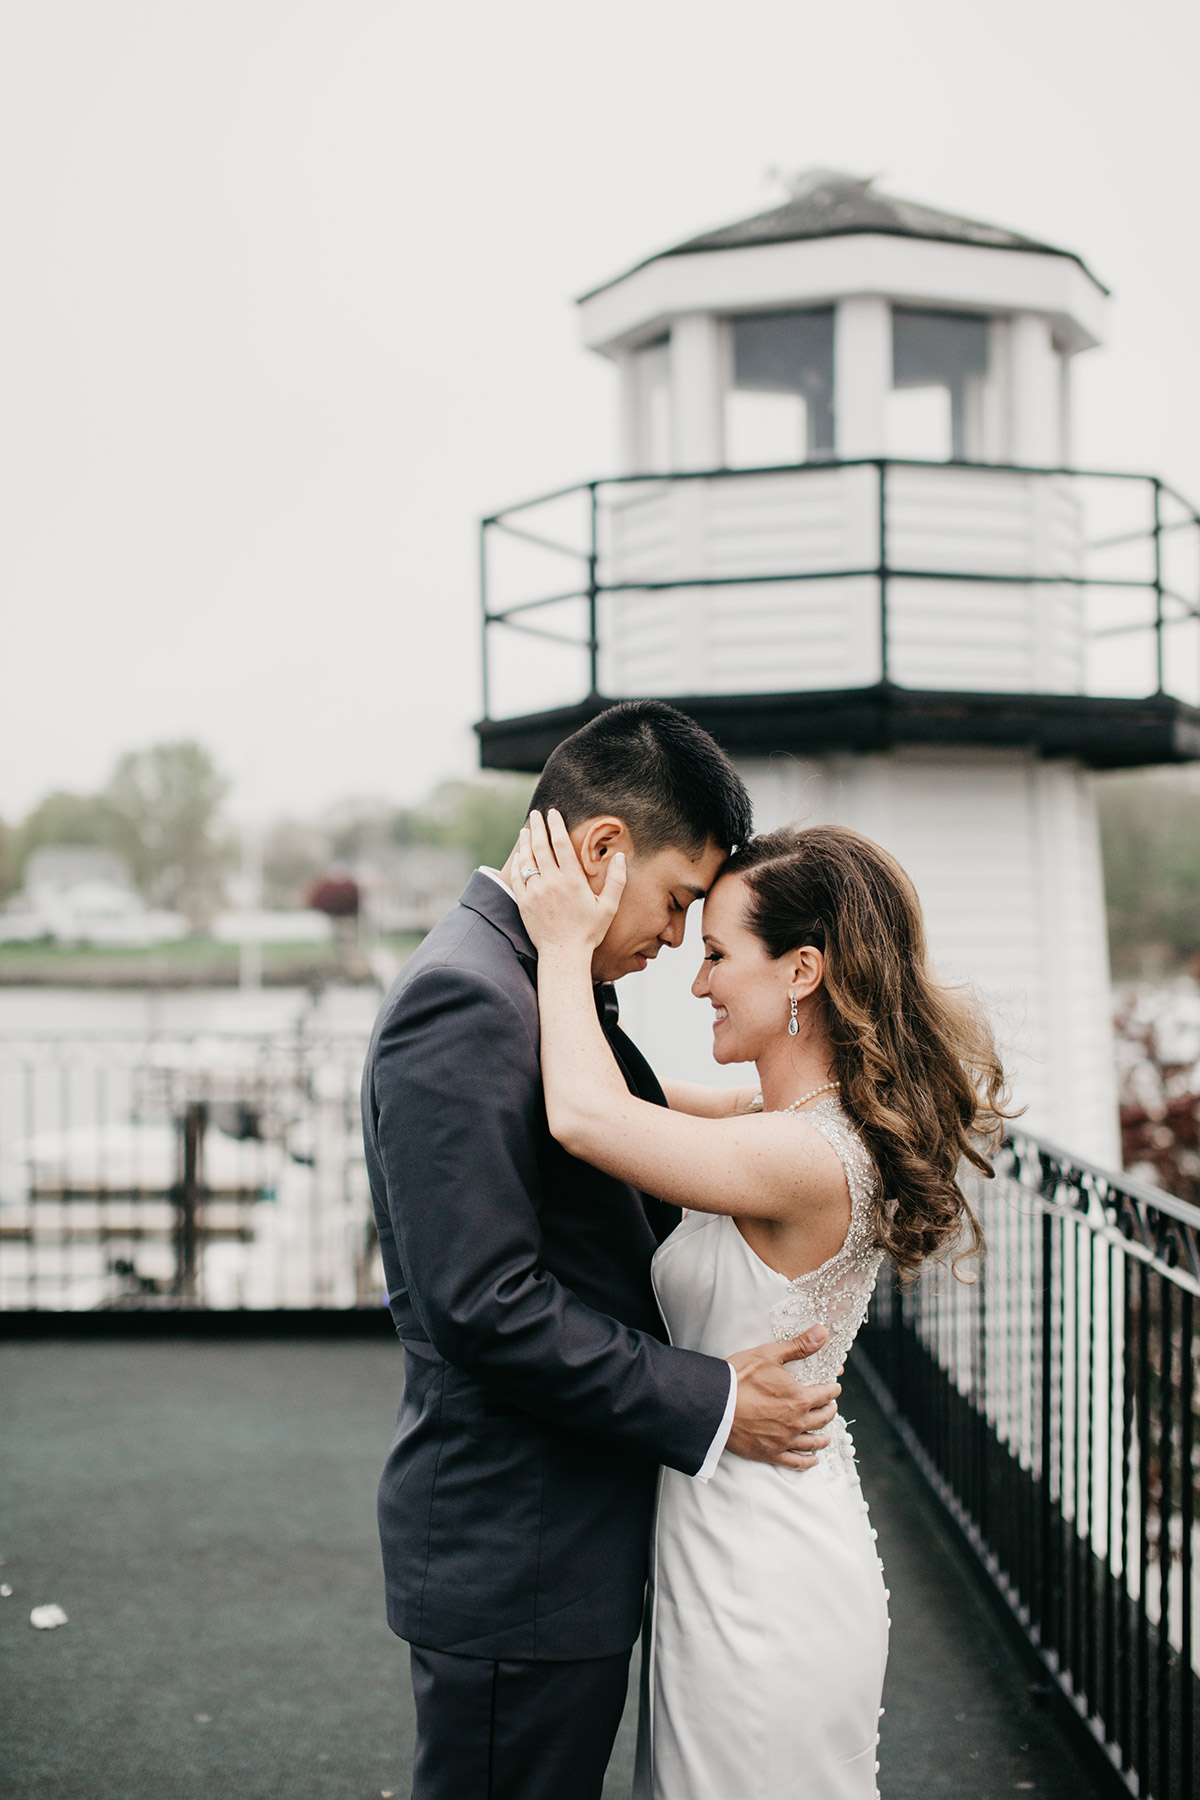 wedding portrait | danversport yatch club